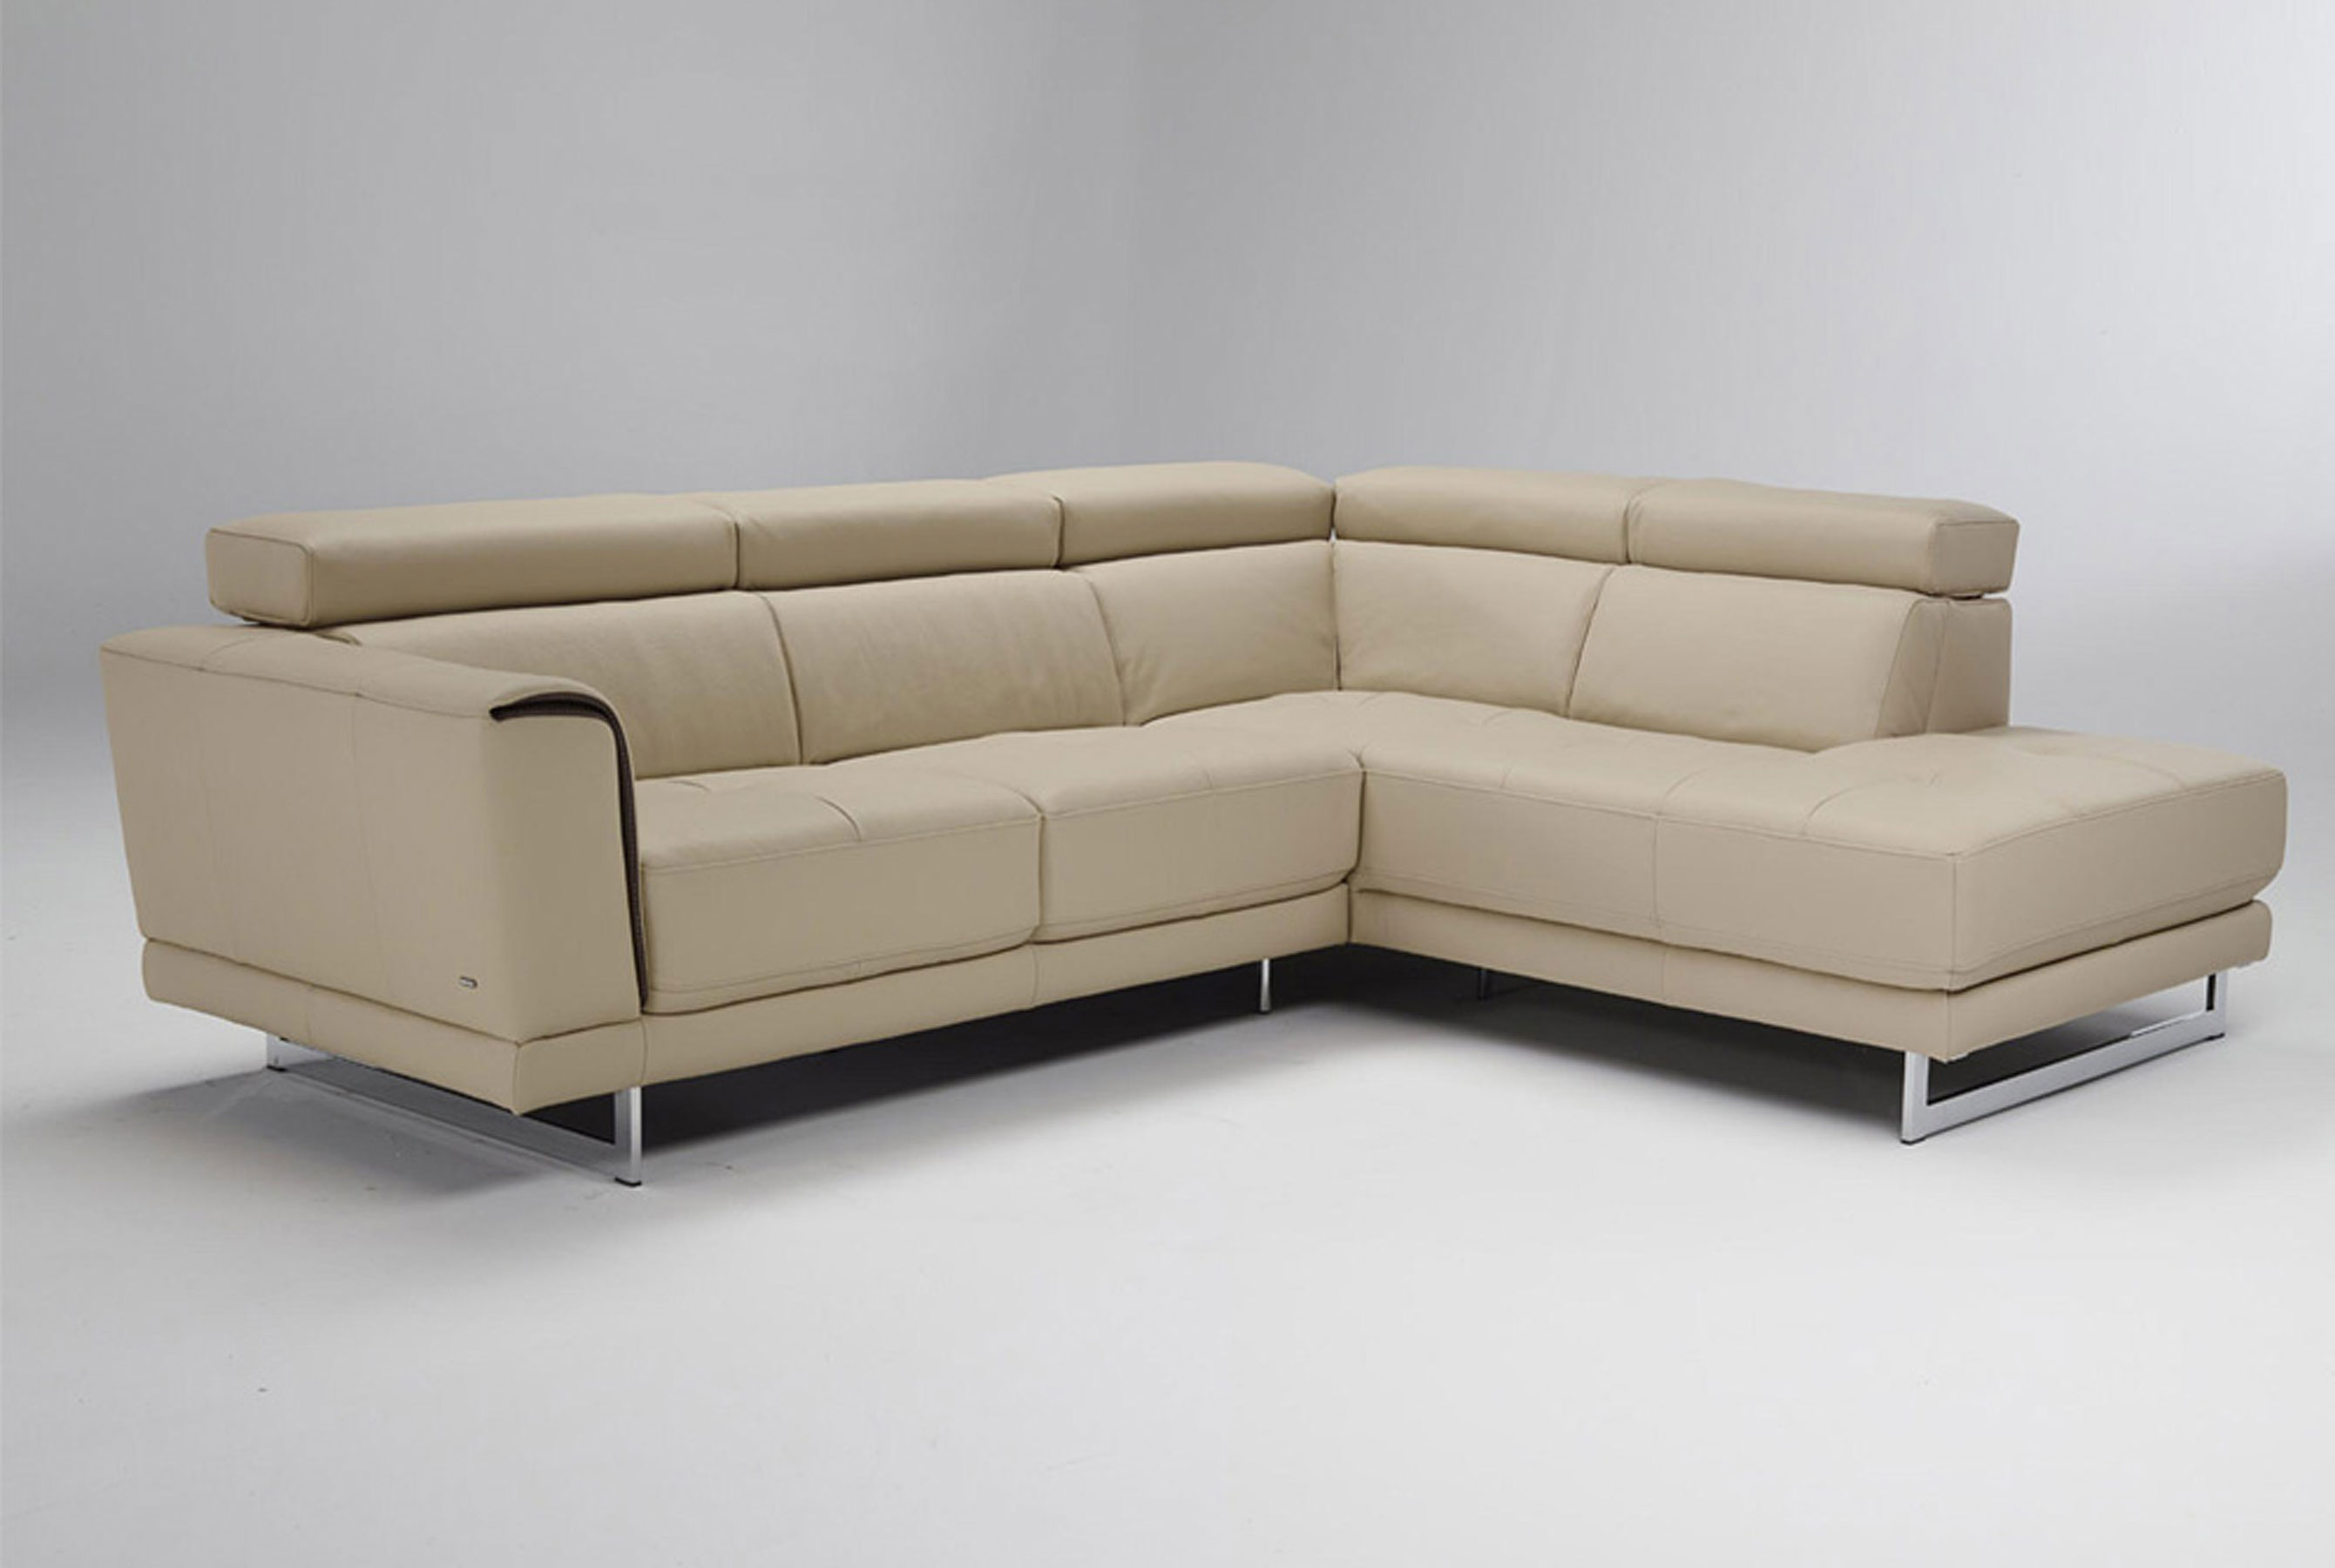 products index brn sectionals monaco detail sectional grain leather room top sk living